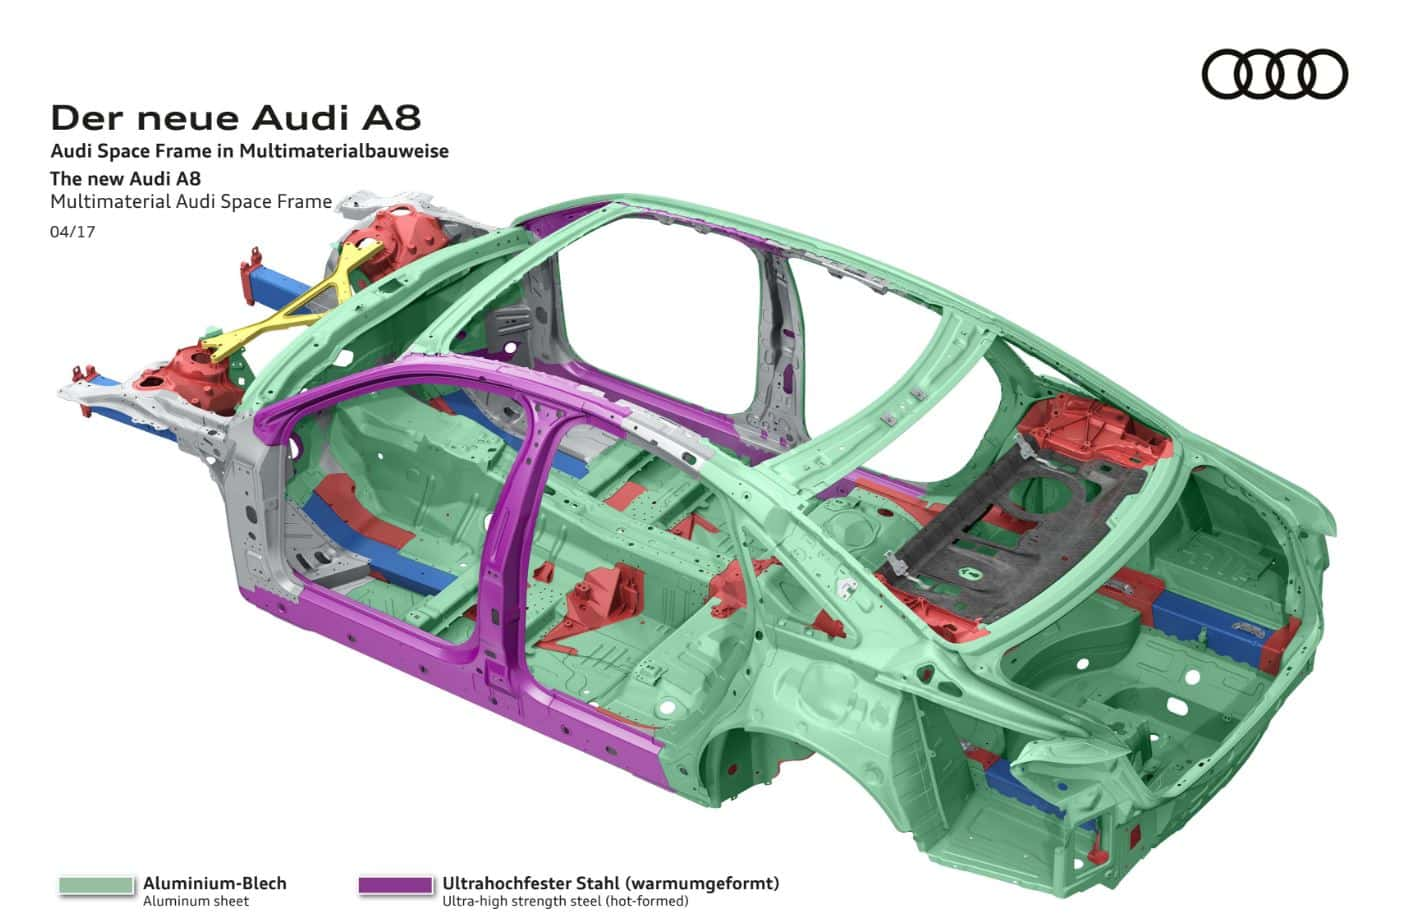 Audi A8 space frame 4